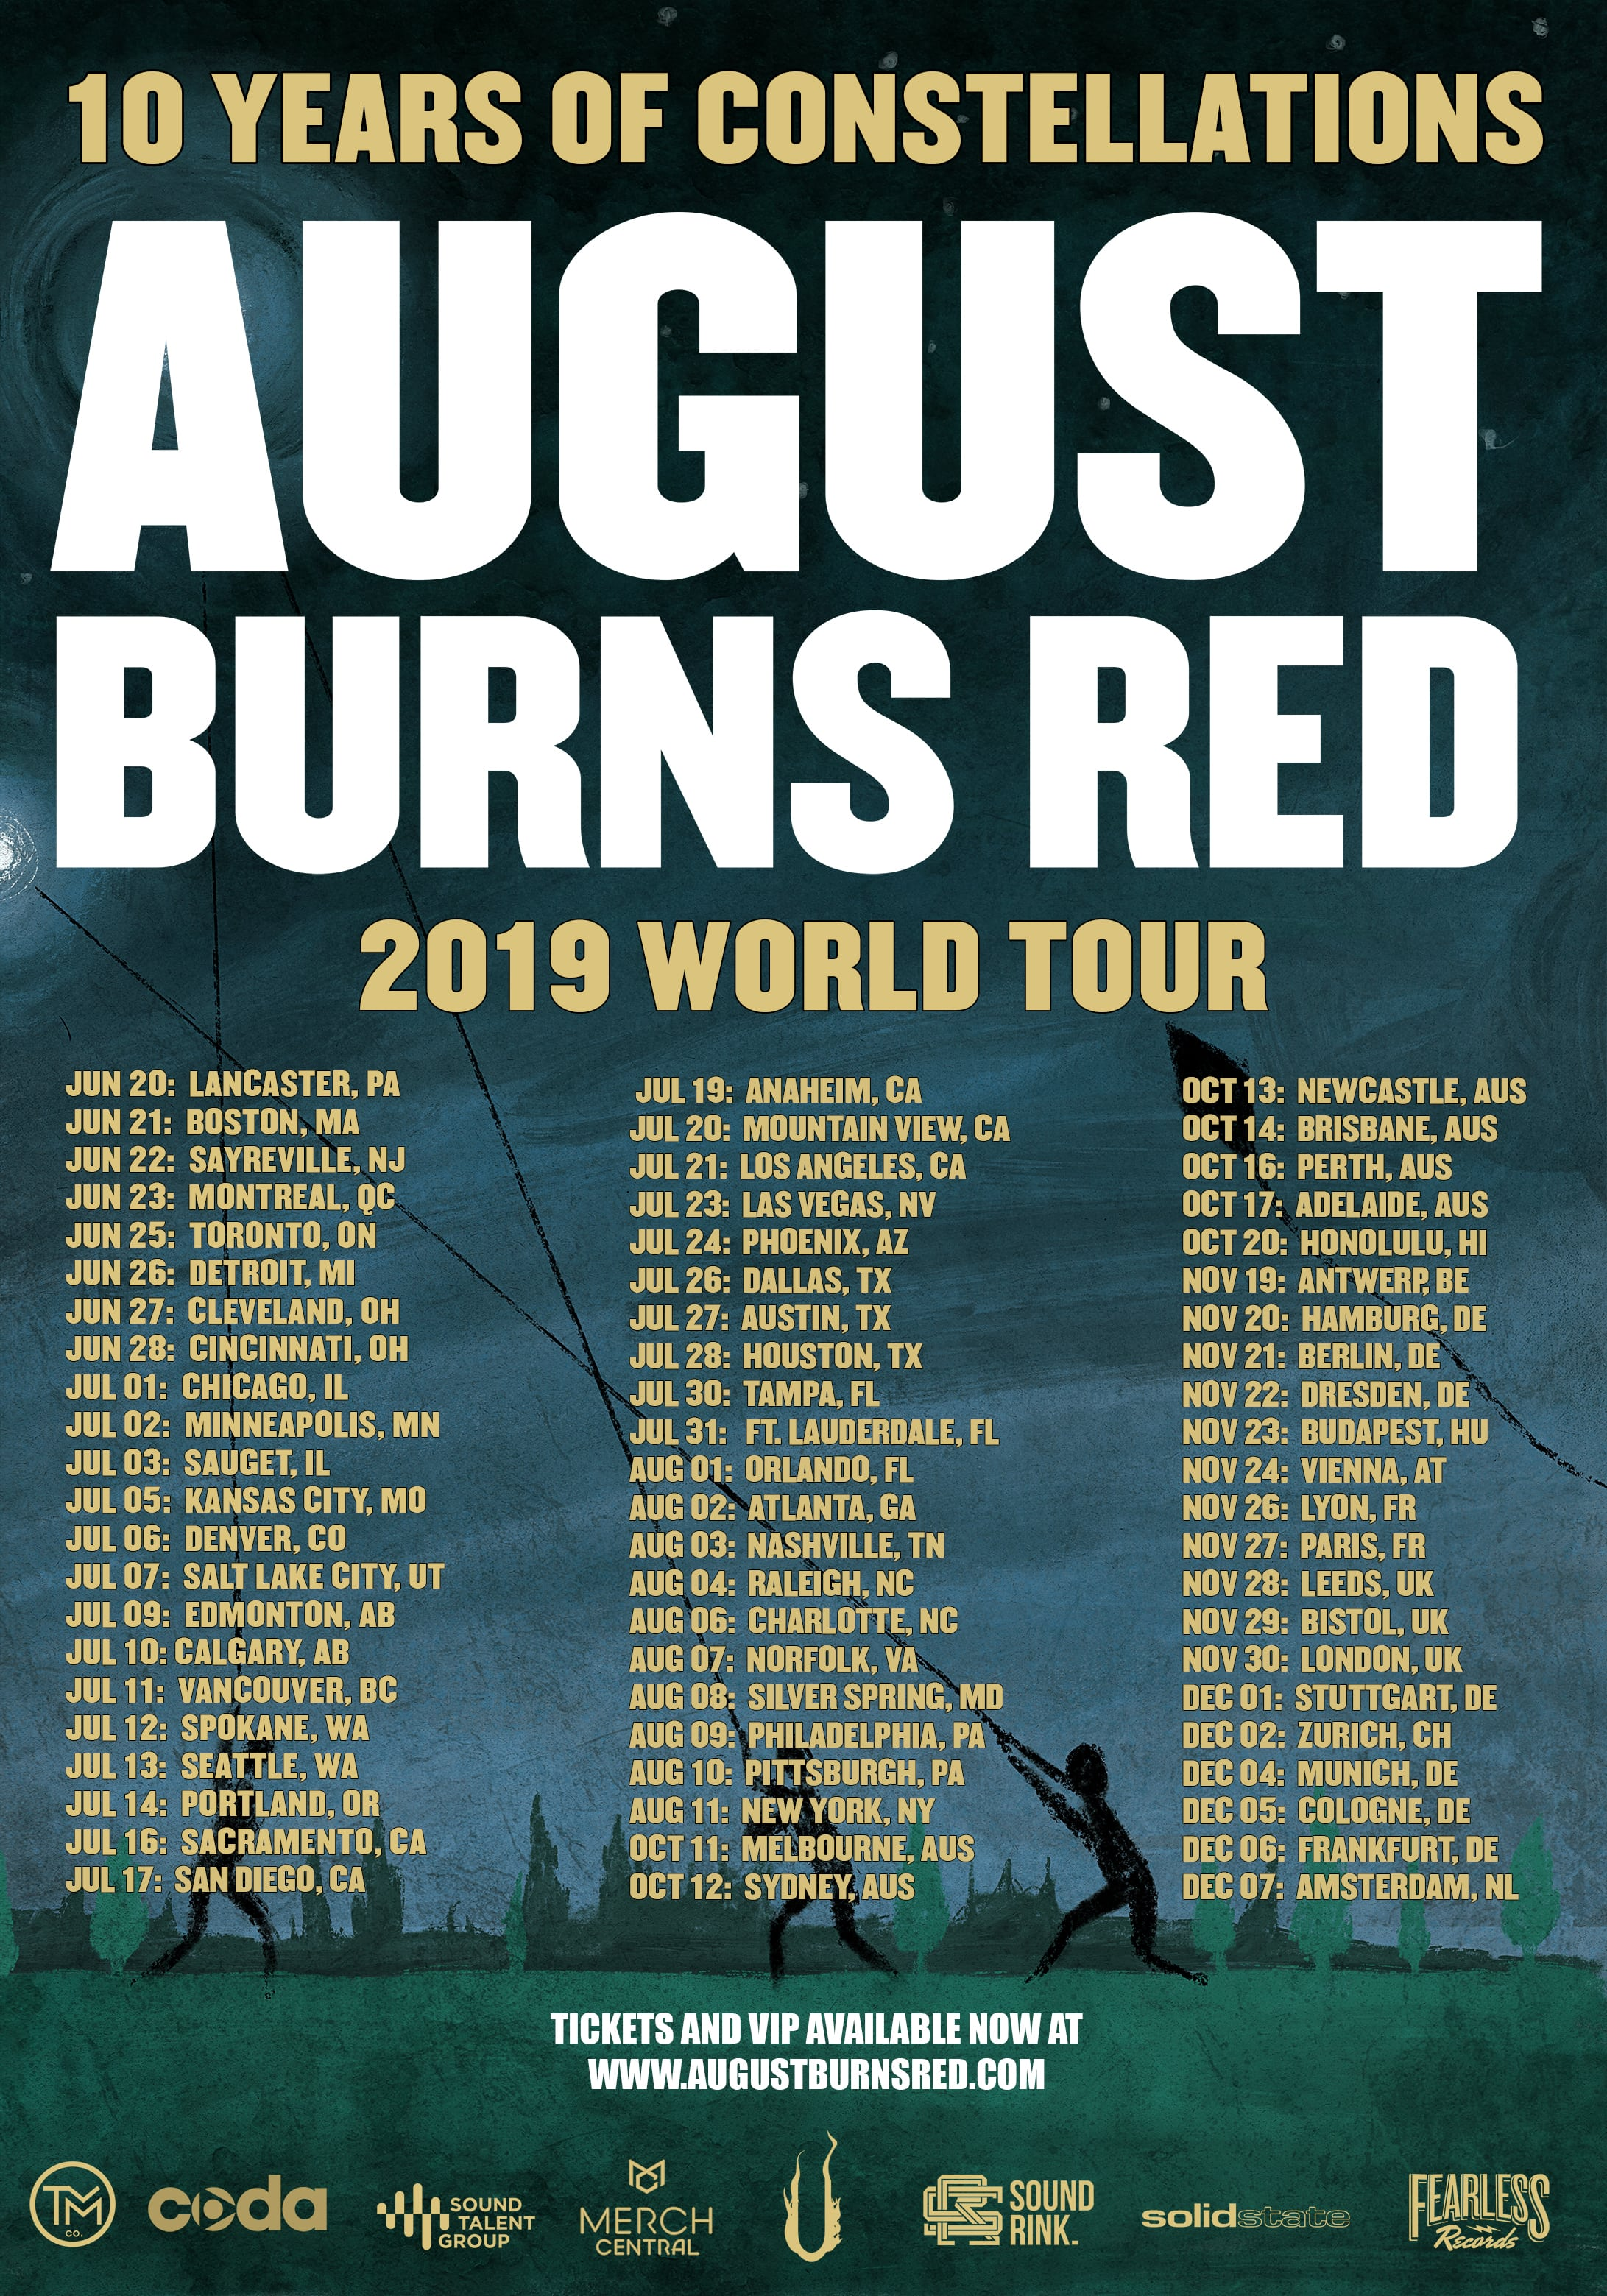 August Burns Red New Album 2020 AUGUST BURNS RED   The Official Website